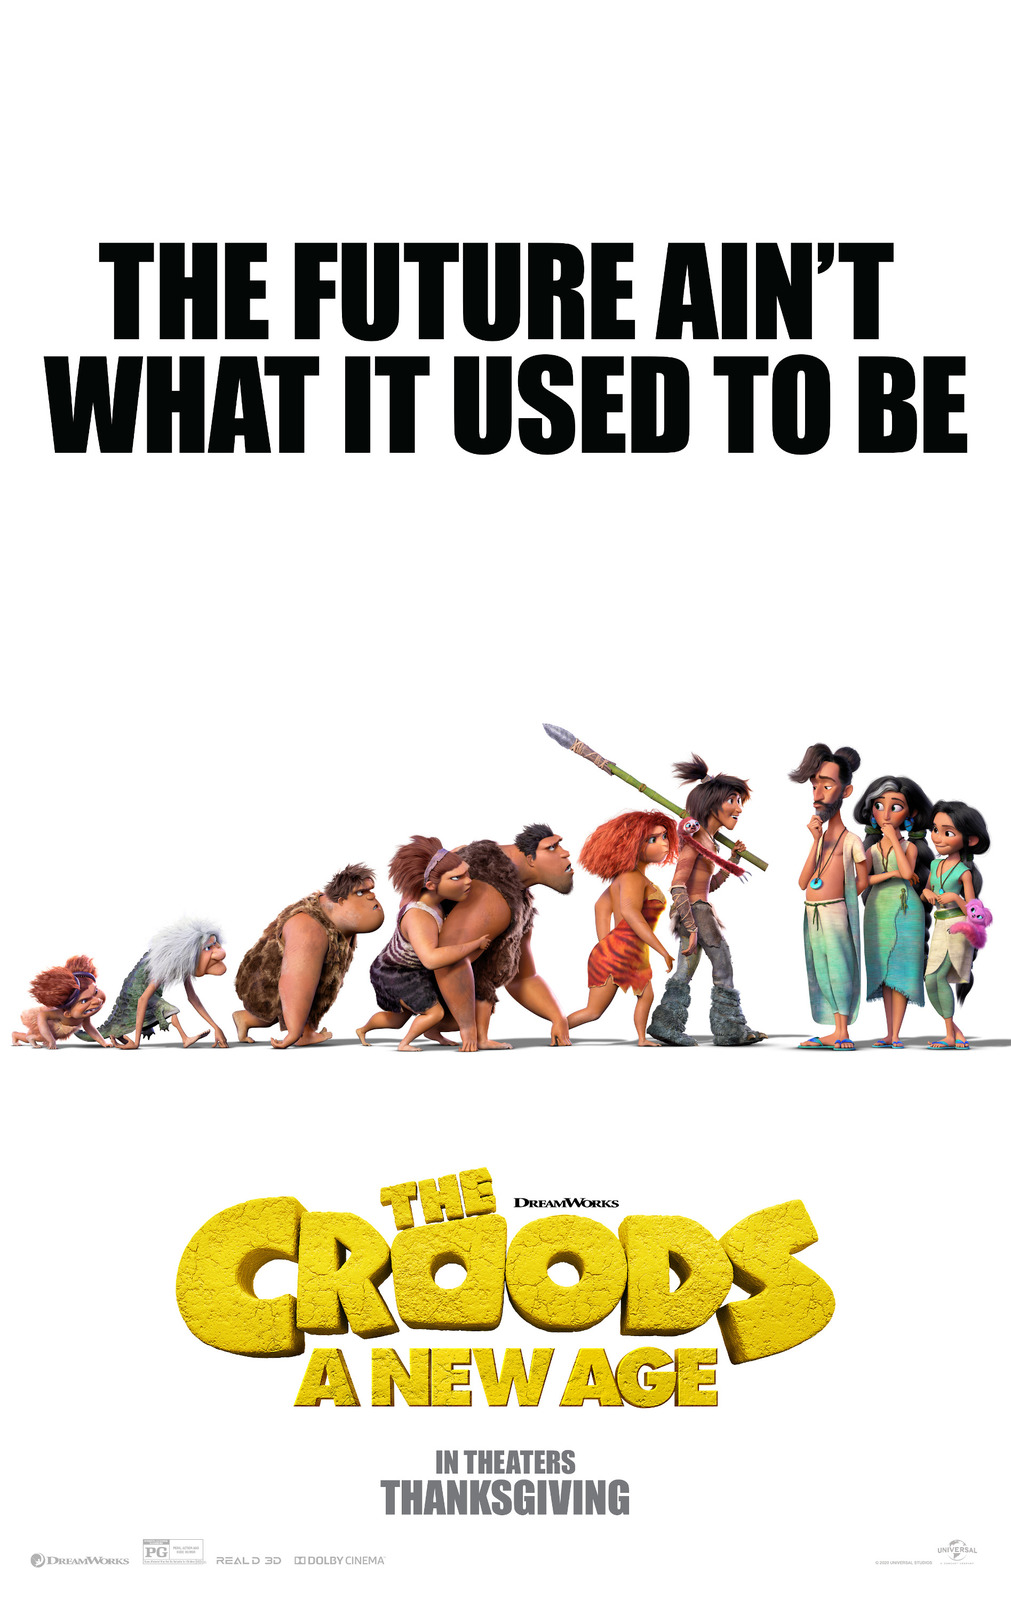 """The Croods A New Age Movie Poster Joel Crawford Animated Film Art Print 24x36"""" - £7.89 GBP - £14.42 GBP"""